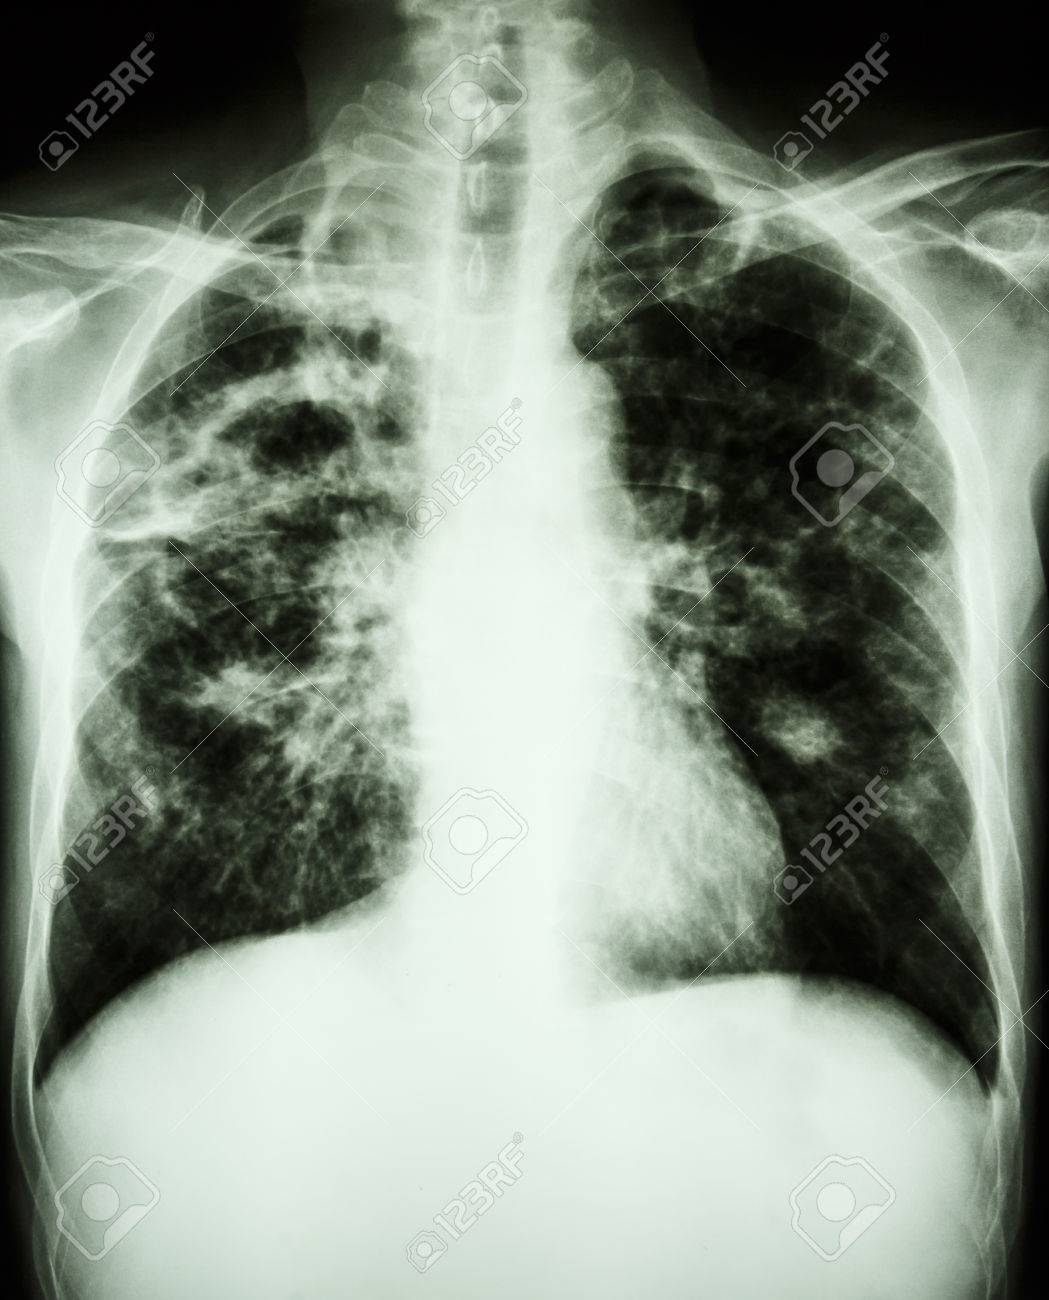 film chest x-ray show cavity at right lung,fibrosis & interstitial & patchy infiltrate at both lung due to Mycobacterium tuberculosis infection (Pulmonary Tuberculosis) Stock Photo - 26045077